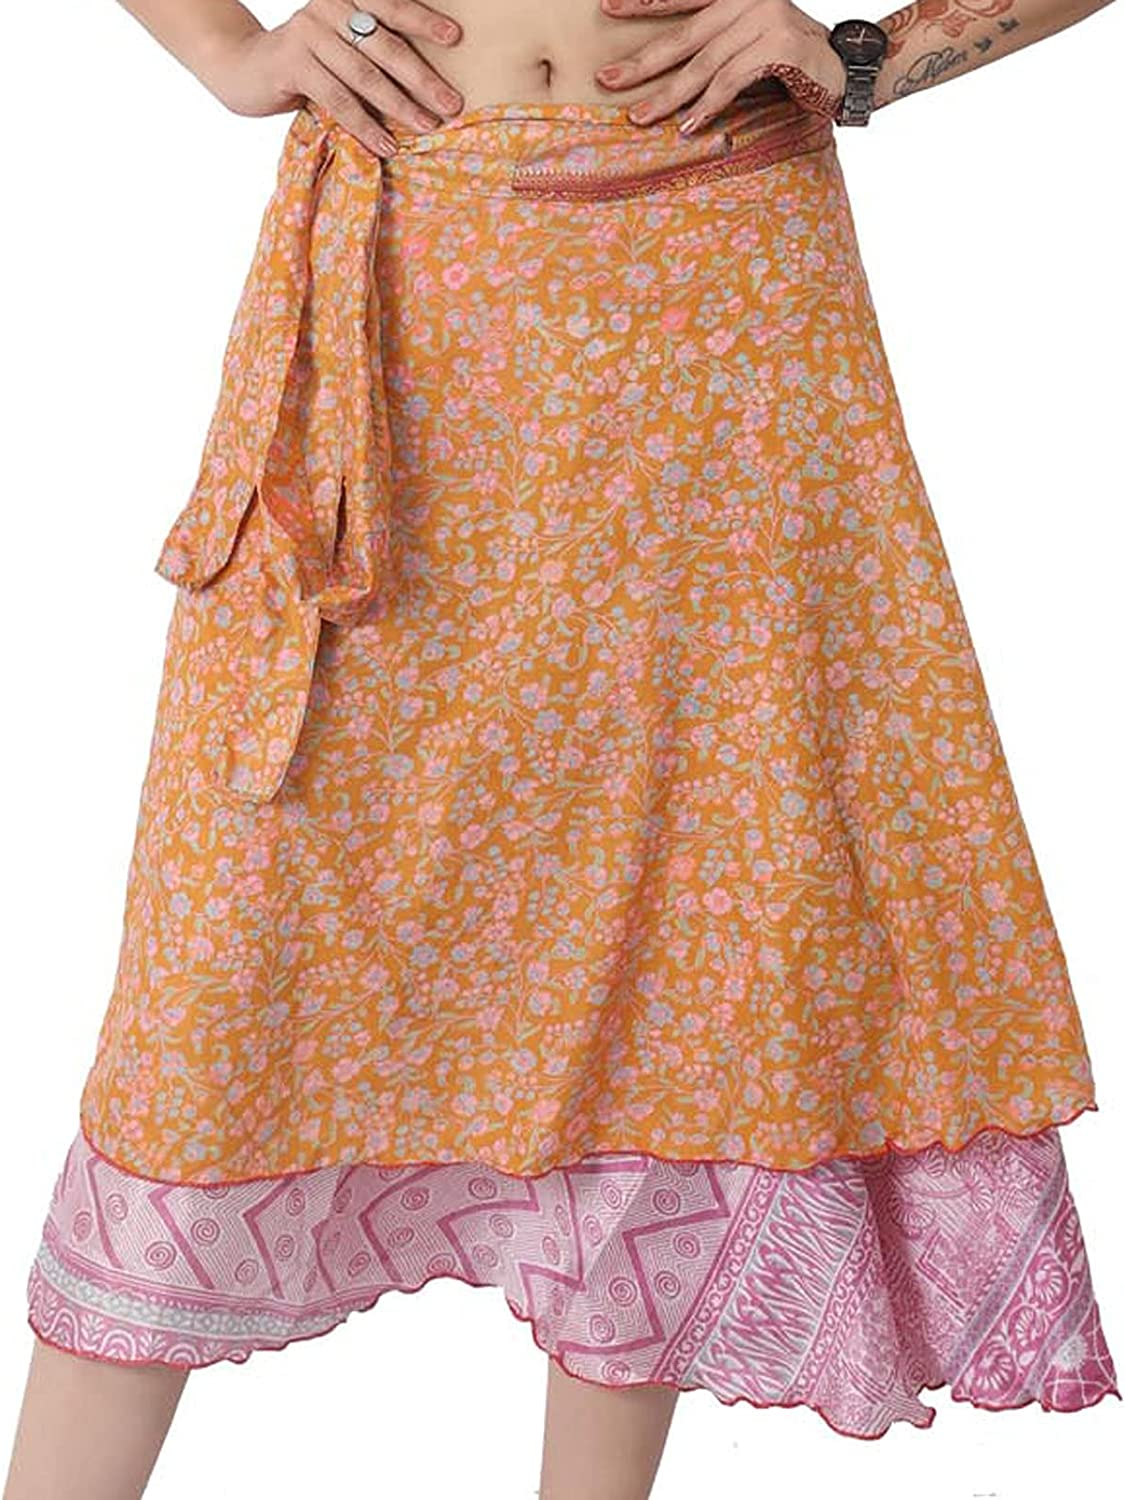 Wevez Pack of 3 Pcs Original Two Layer Printed Wrap Around Skirts